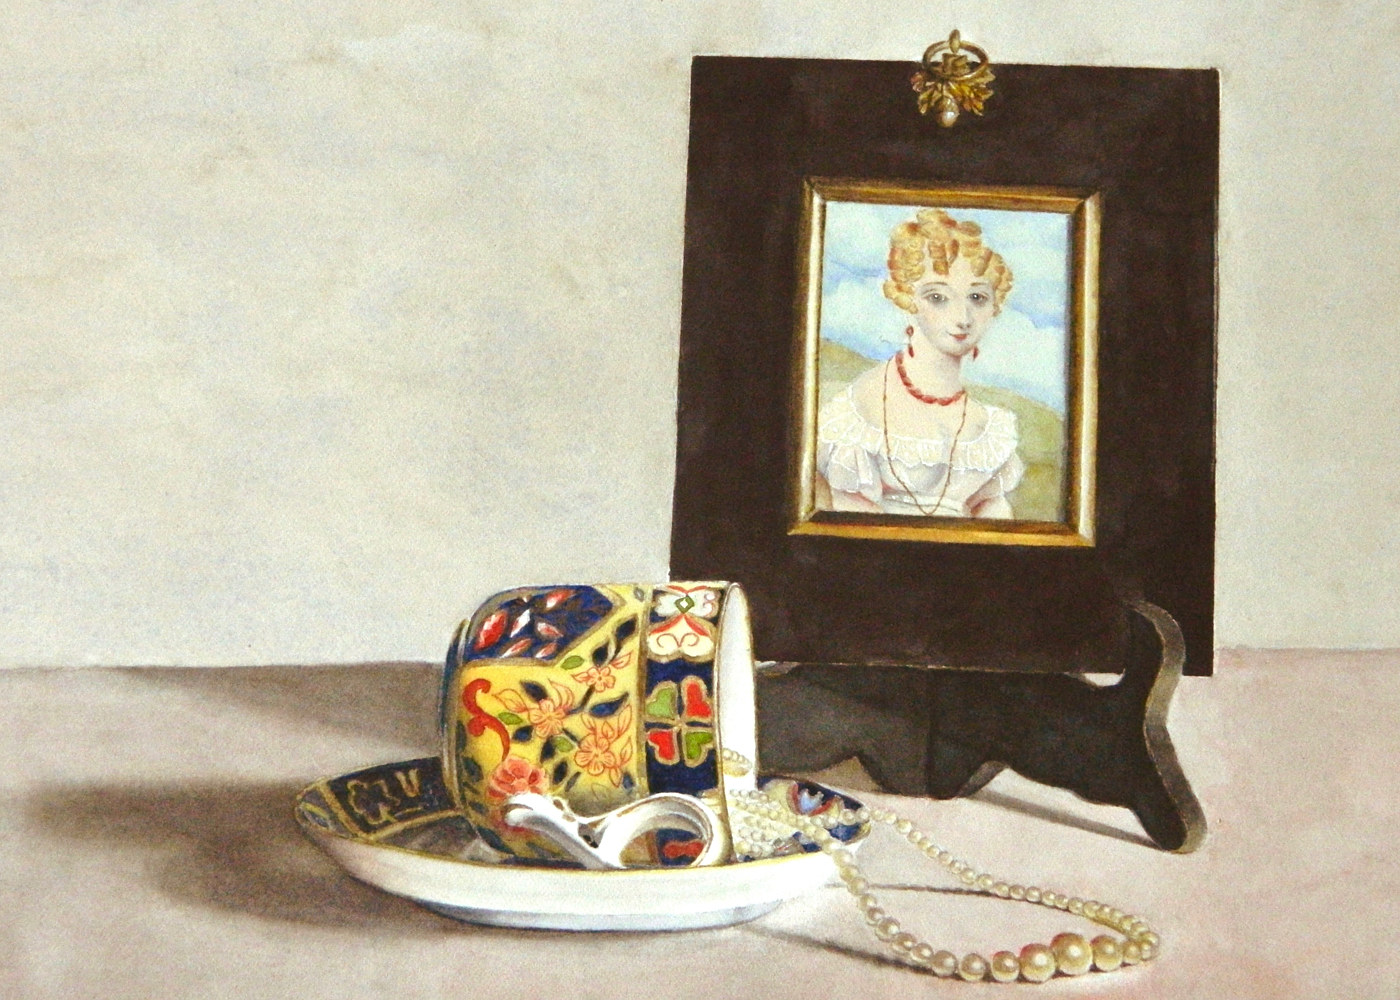 Watercolor The Lady and The Teacup by Jane Crosby